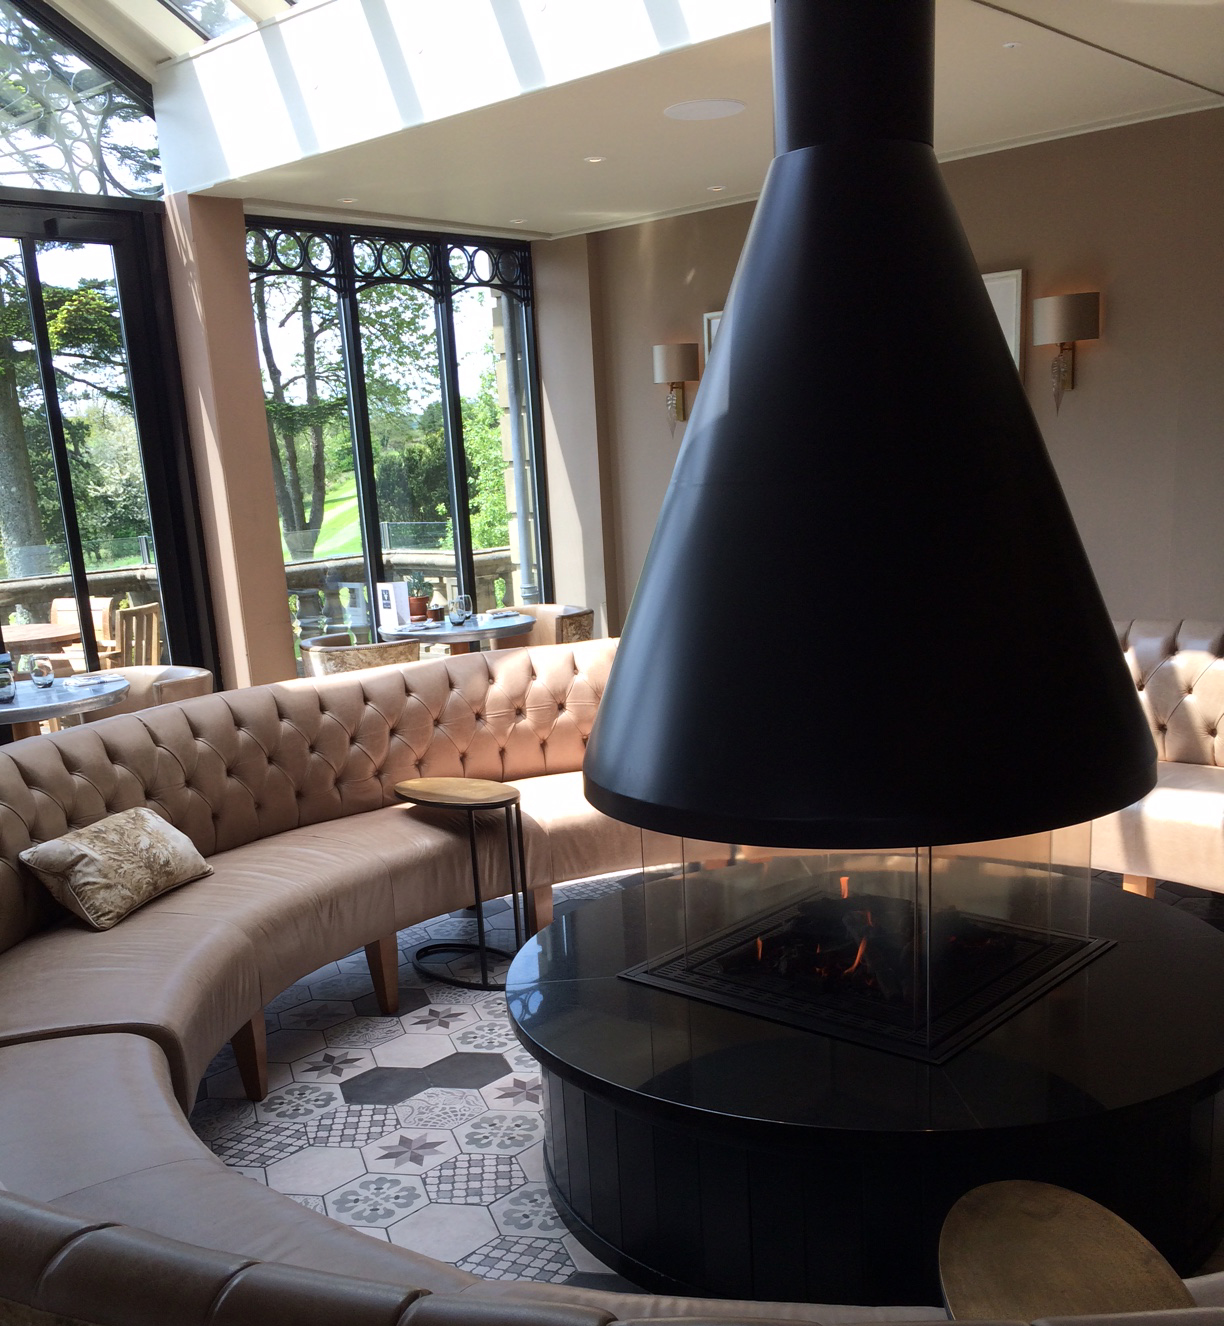 Contemporary-Modern-Glass-Fronted-Gas-Fireplaces-Ortal-Island-IMG_2365-a.jpg